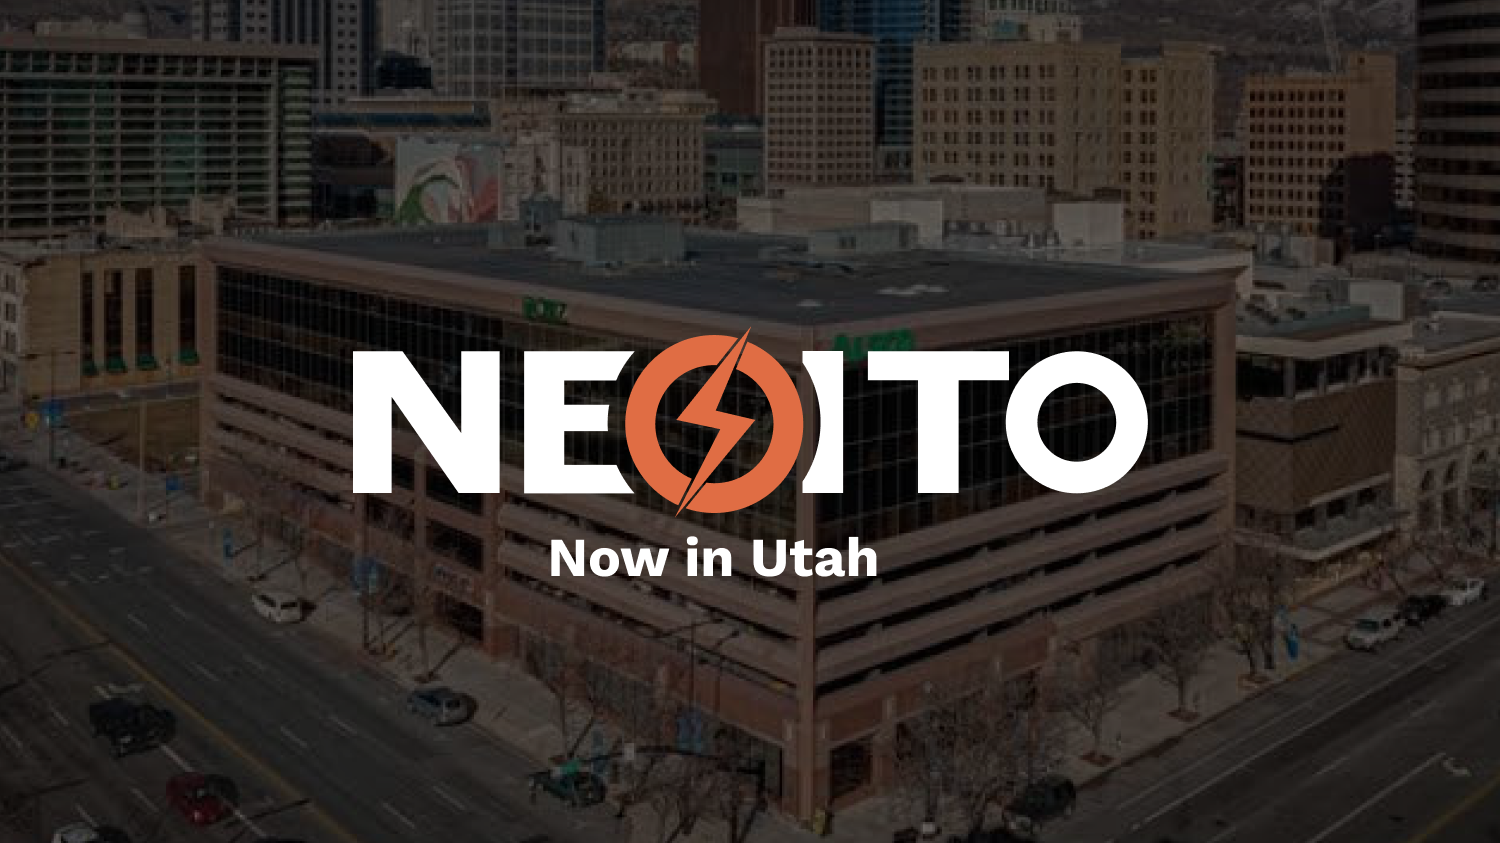 Product Development Firm Neoito Opens Up in Salt Lake City